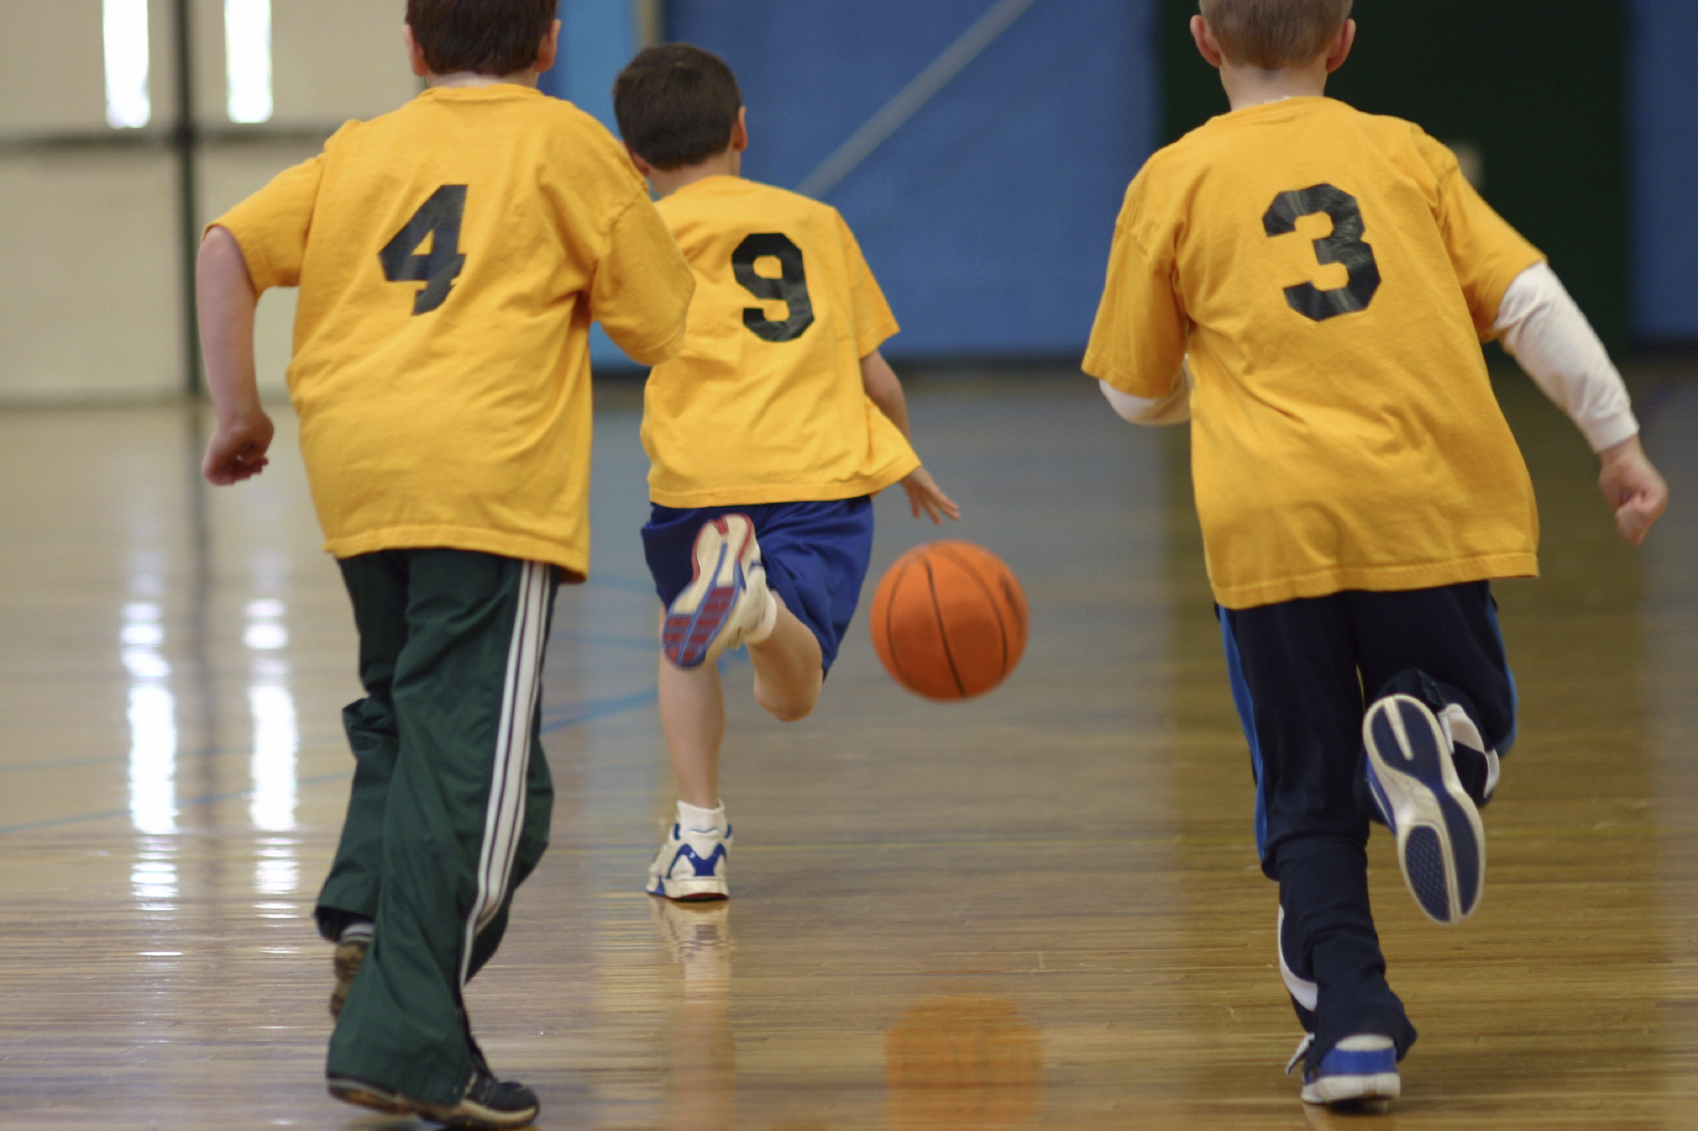 Is Playing Sports Good For A Child With Adhd